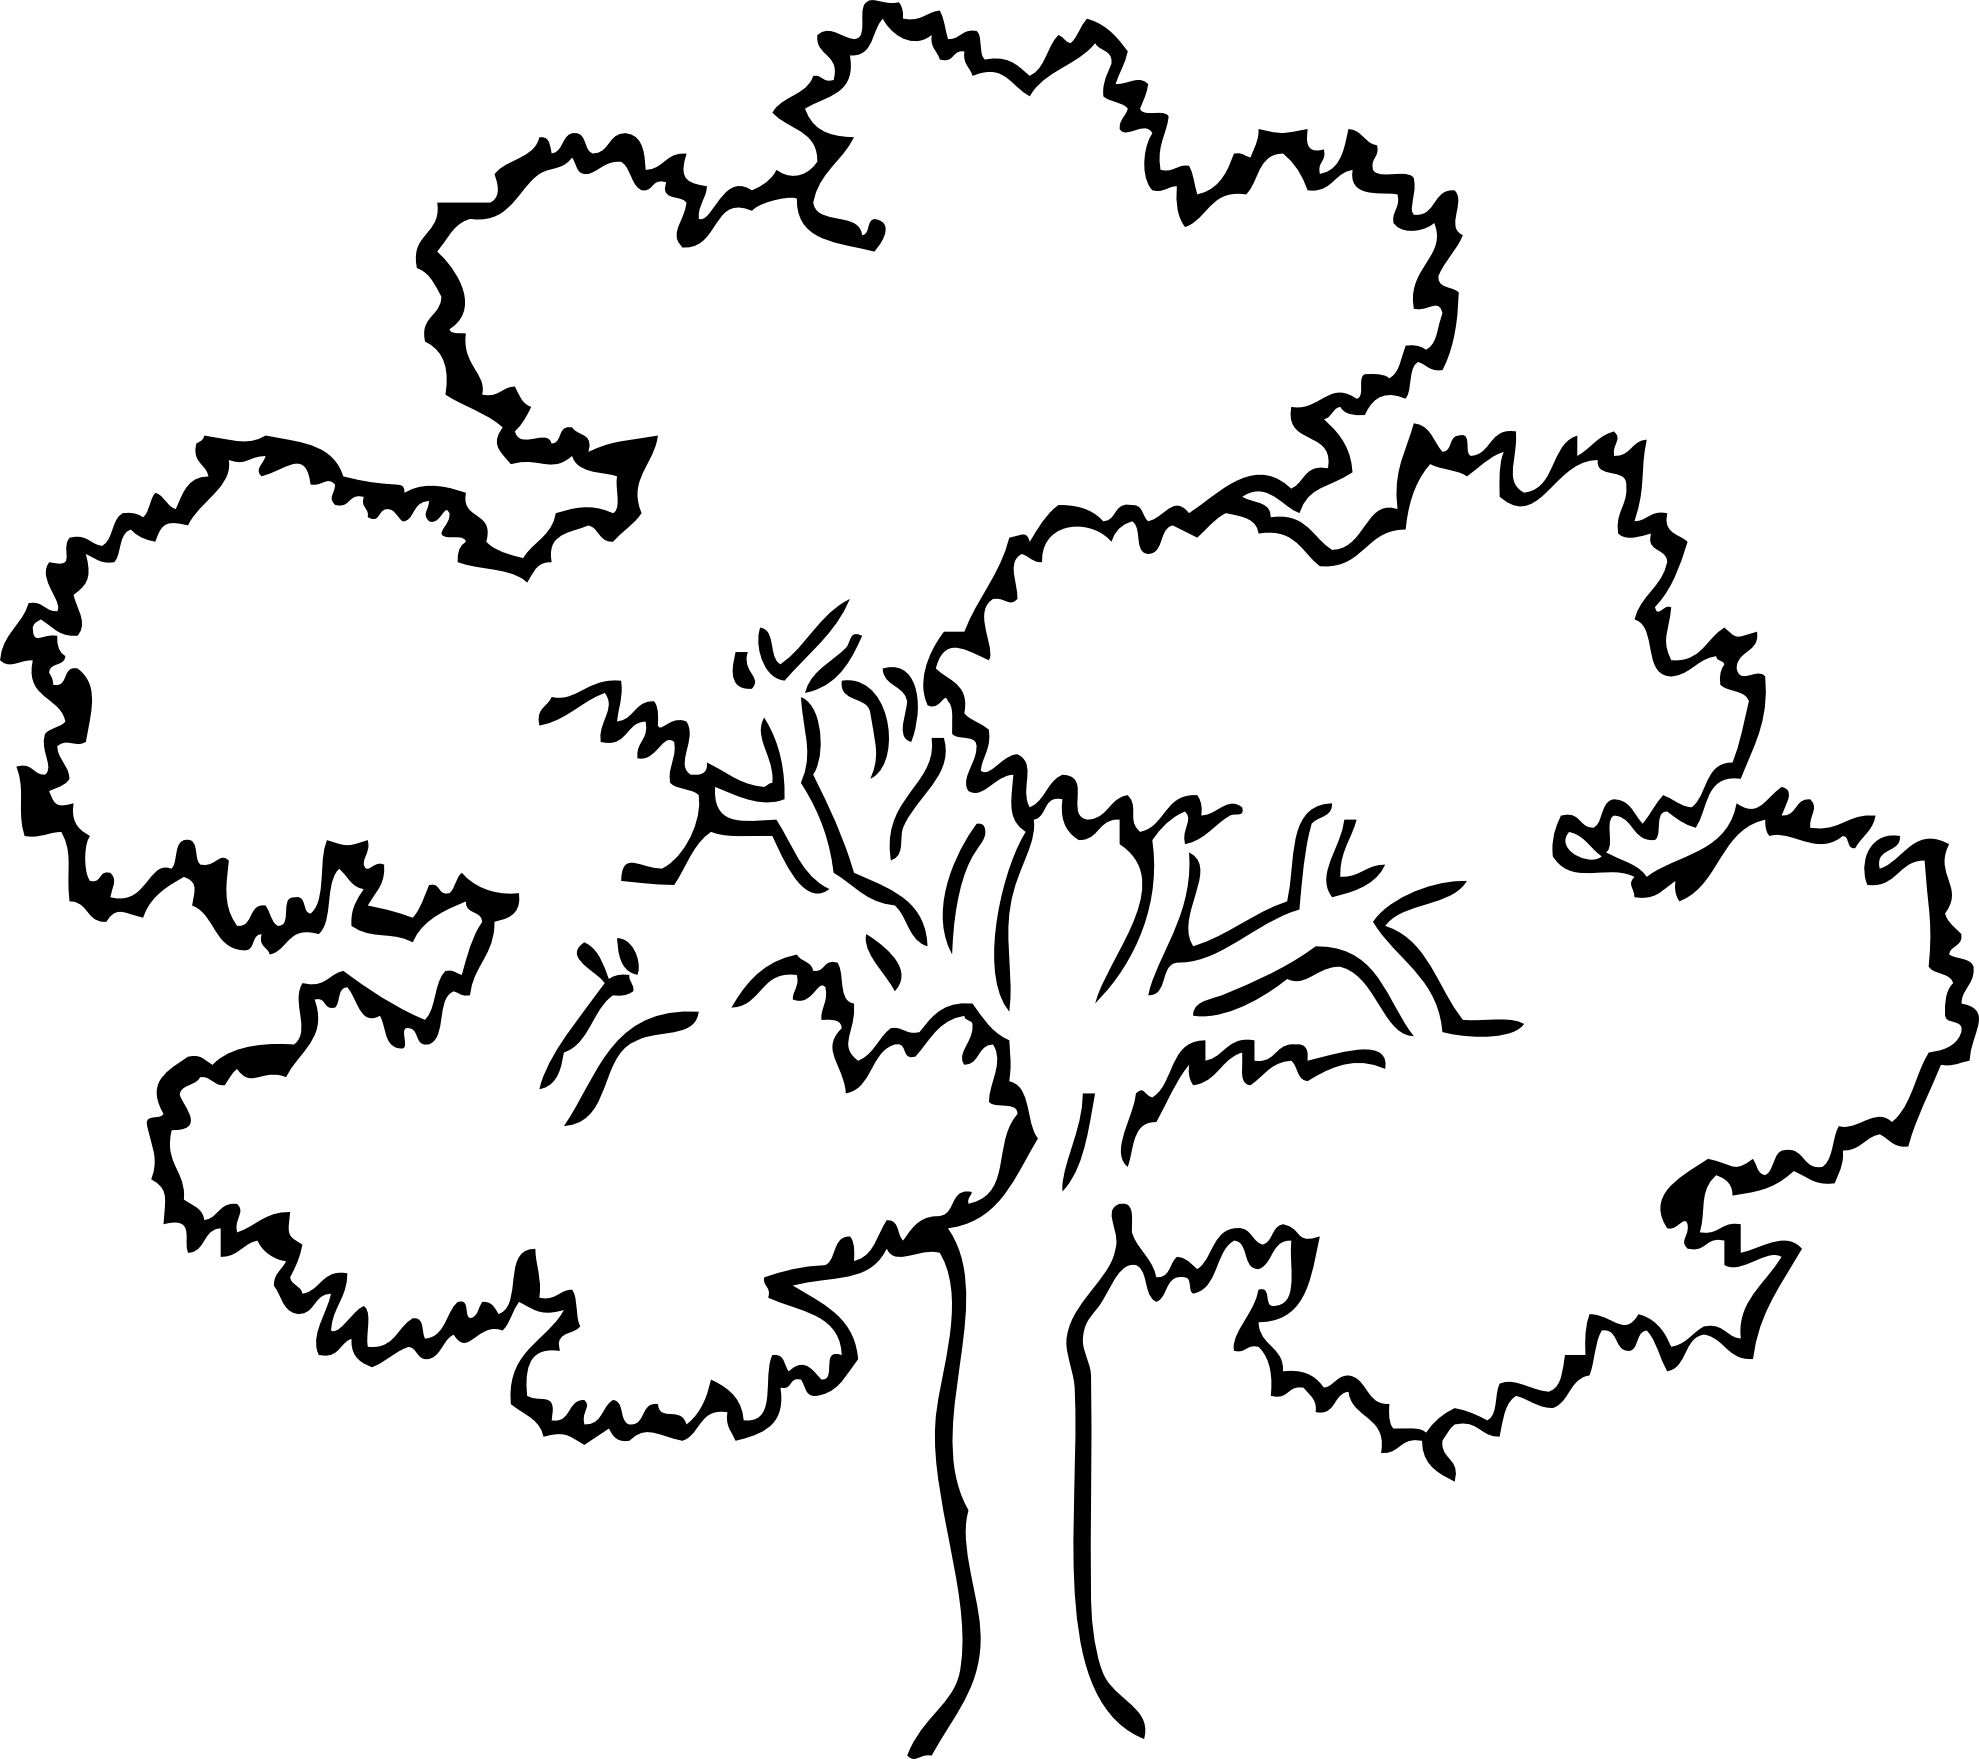 Cliparti1 Tree Clipart Black And White. oak clipart